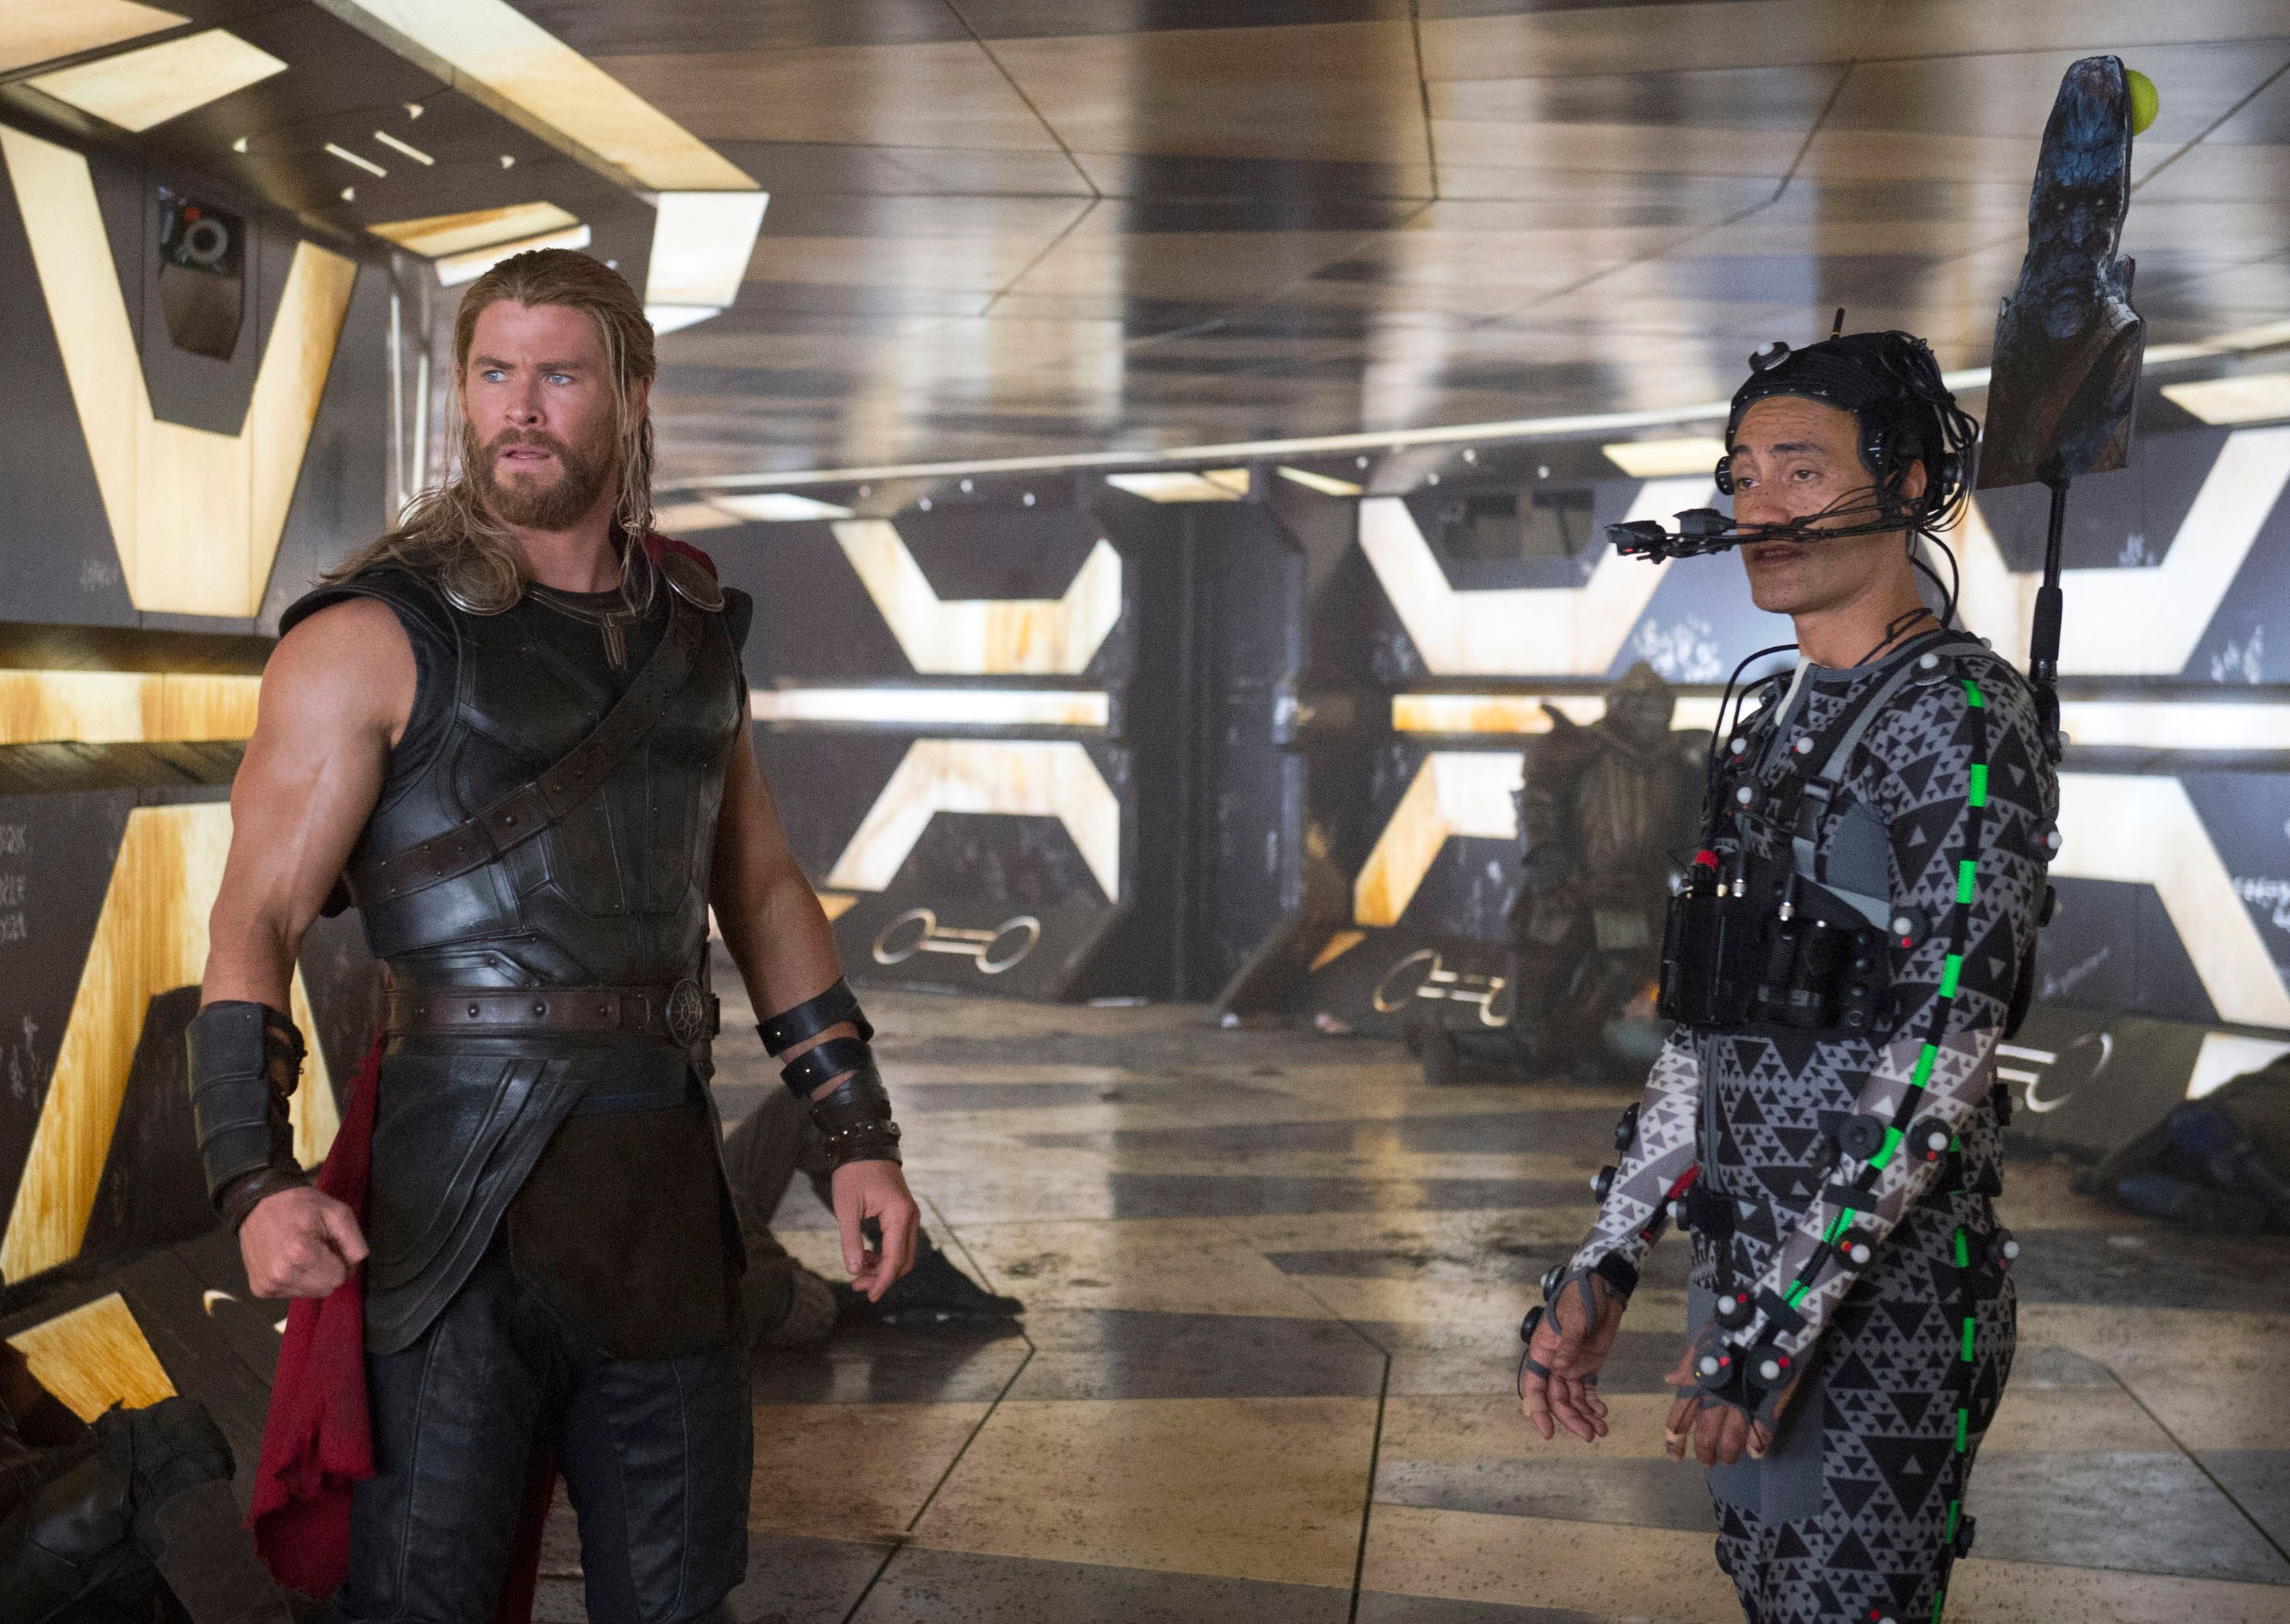 'Thor: Ragnarok' Editor Zene Baker on Deleted Scenes, Joining Marvel, and That Runtime Rumor